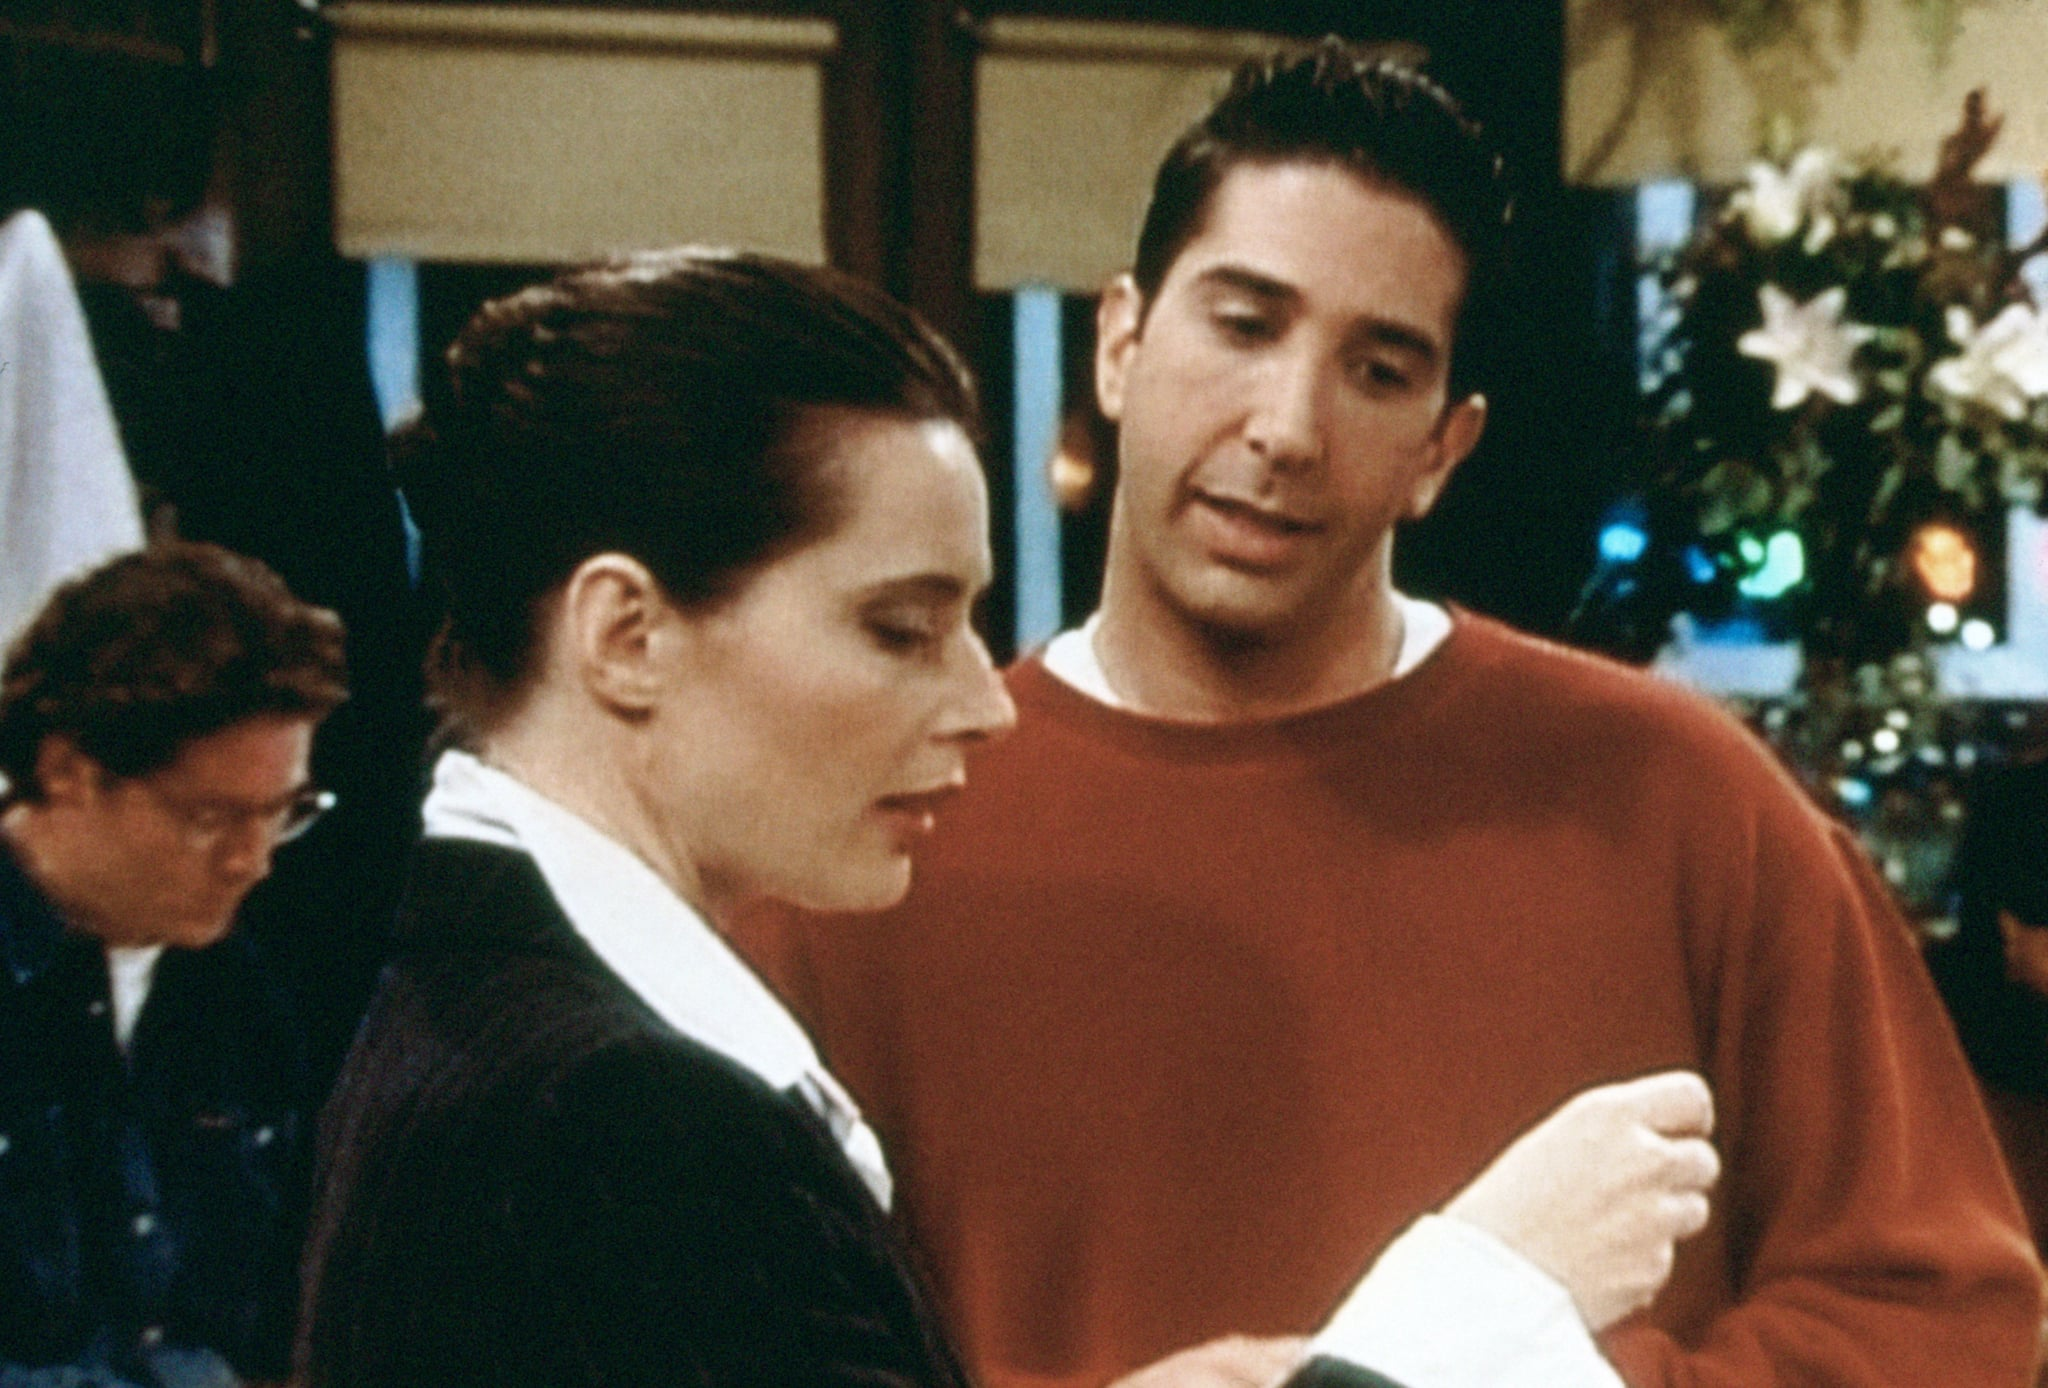 FRIENDS, (from left): Isabella Rossellini, David Schwimmer, 'The One With Frank Jr.', (Season 3, aired Oct. 17, 1996), 1994-2004,  Warner Bros. / Courtesy: Everett Collection